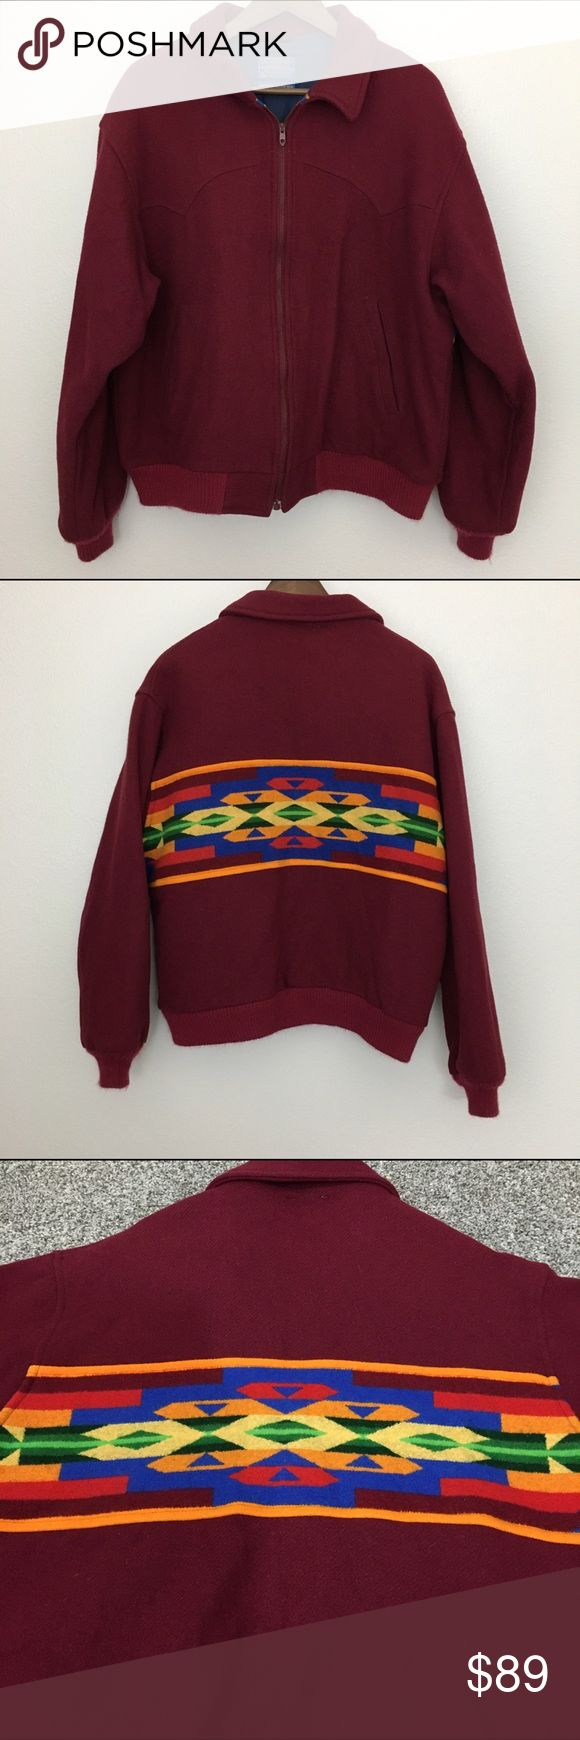 """Pendleton Bomber Jacket. Rare! Vintage! Burgundy L Pendleton bomber jacket. Rare! Vintage! High Grade Western Wear. Navajo design. Color is burgundy.  Made in USA. Fabric is 100% virgin wool. Formulated with 3M's Thinsulate Thermal Insulation. Dry clean only.  Size Large Armpit to armpit is 24"""" Length is 26"""" Approximate only.  Pre-owned in great condition.  Stored in a smoke and pet free household.  Please see pictures for details or asks any questions before buying to avoid return…"""